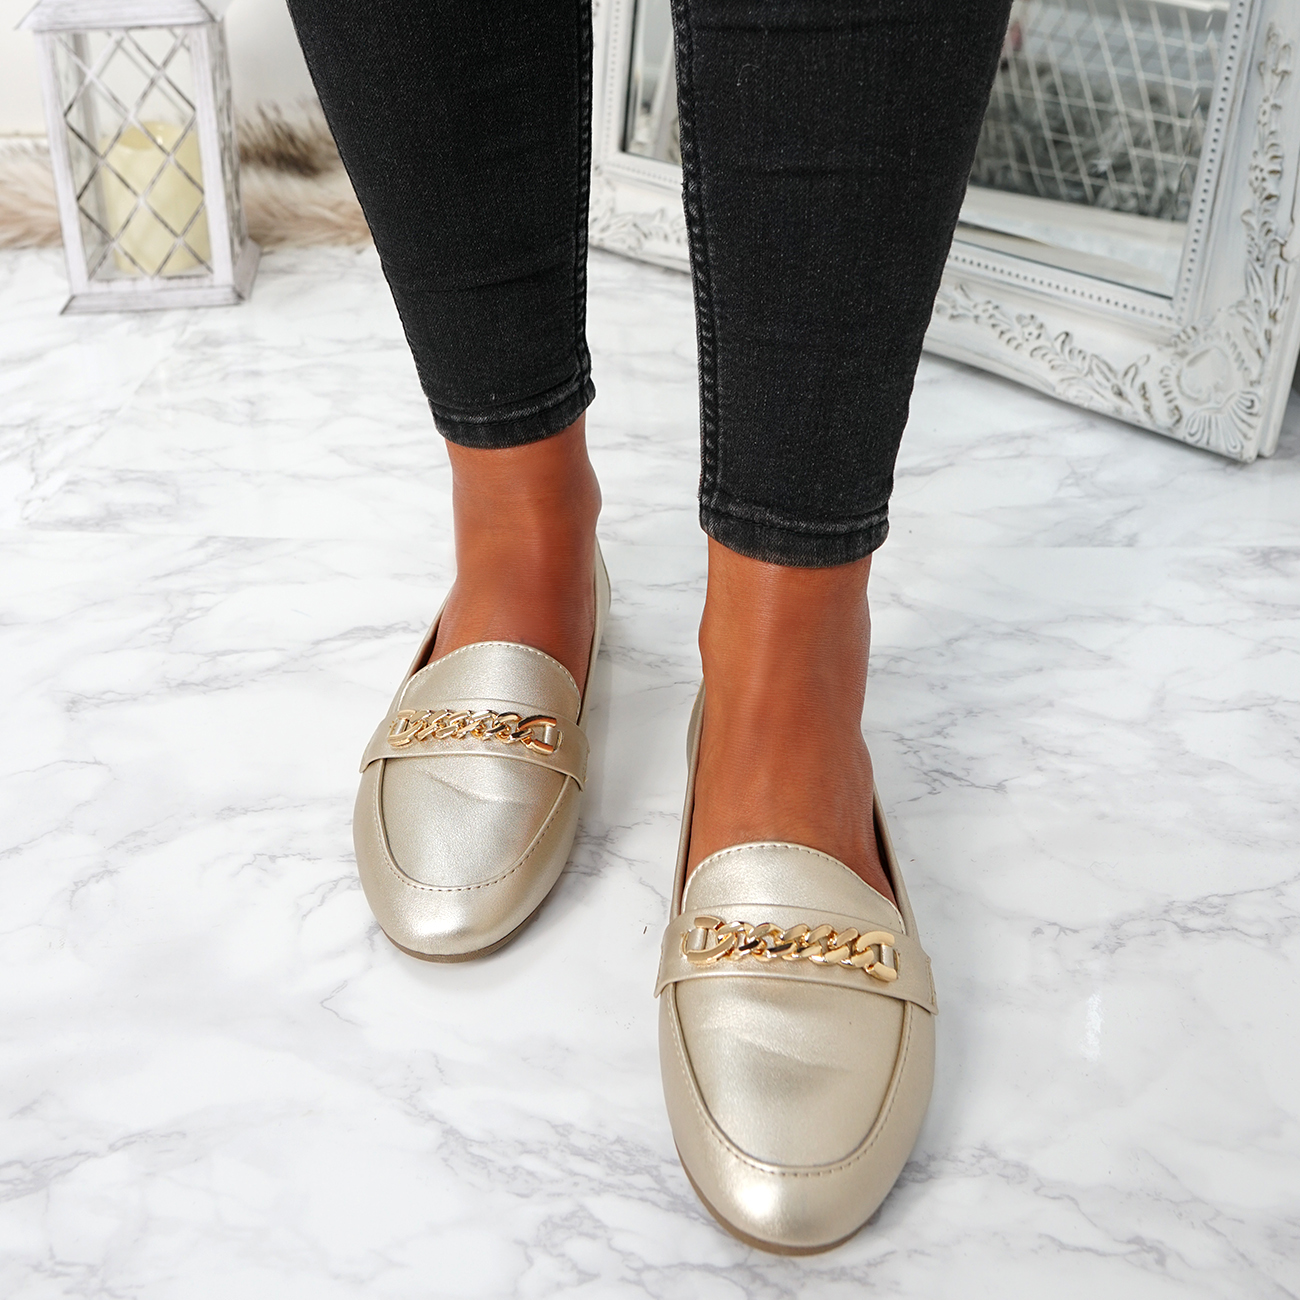 WOMENS-LADIES-CHAIN-SLIP-ON-BALLERINA-LOAFERS-BALLET-DOLLY-PUMPS-SHOES-SIZE thumbnail 27